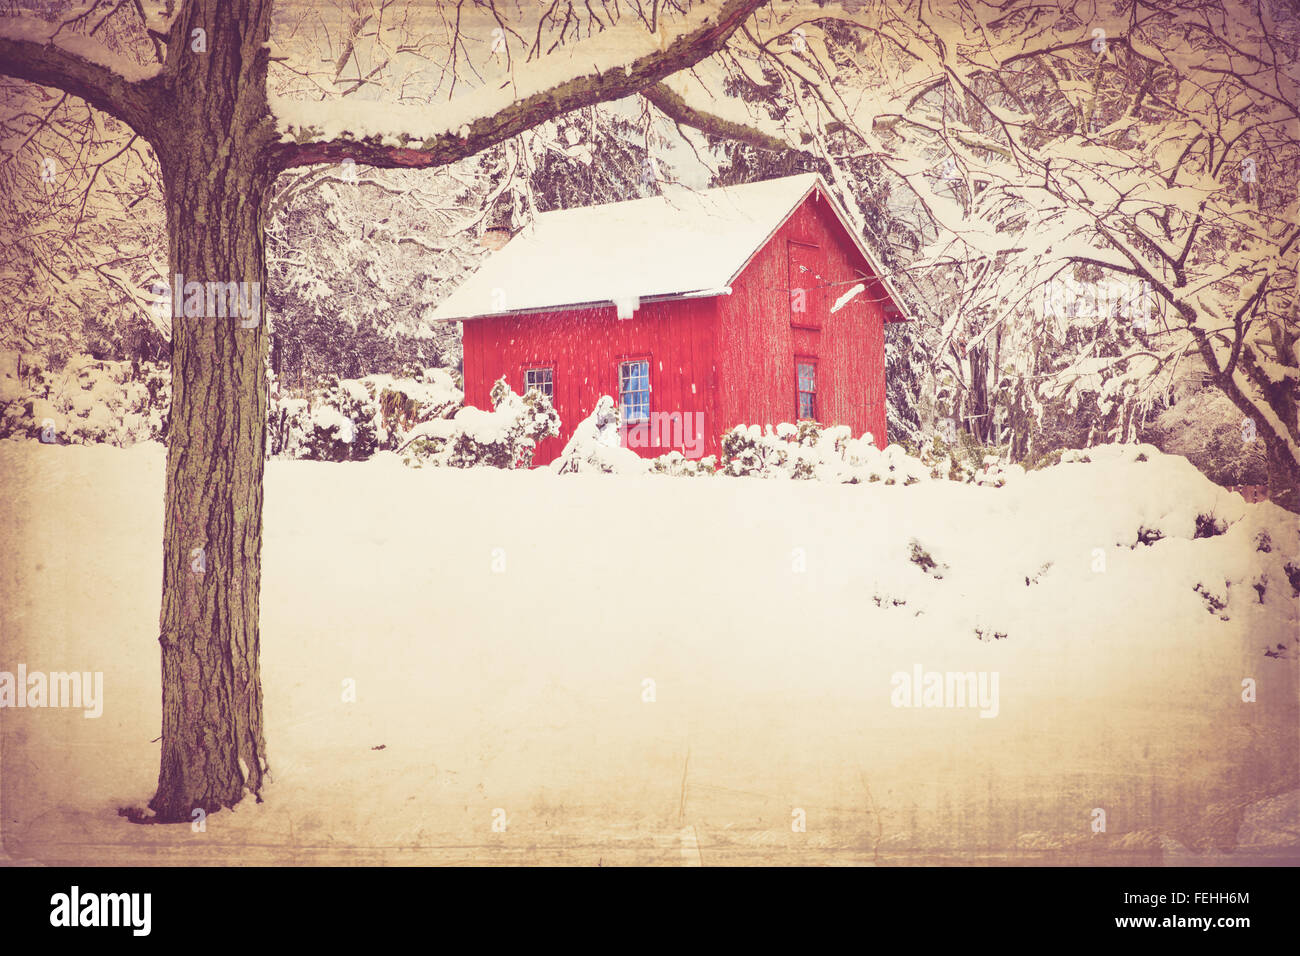 Retro style image of red barn in winter with snow and trees. this image has a vintage texture effect. Stock Photo